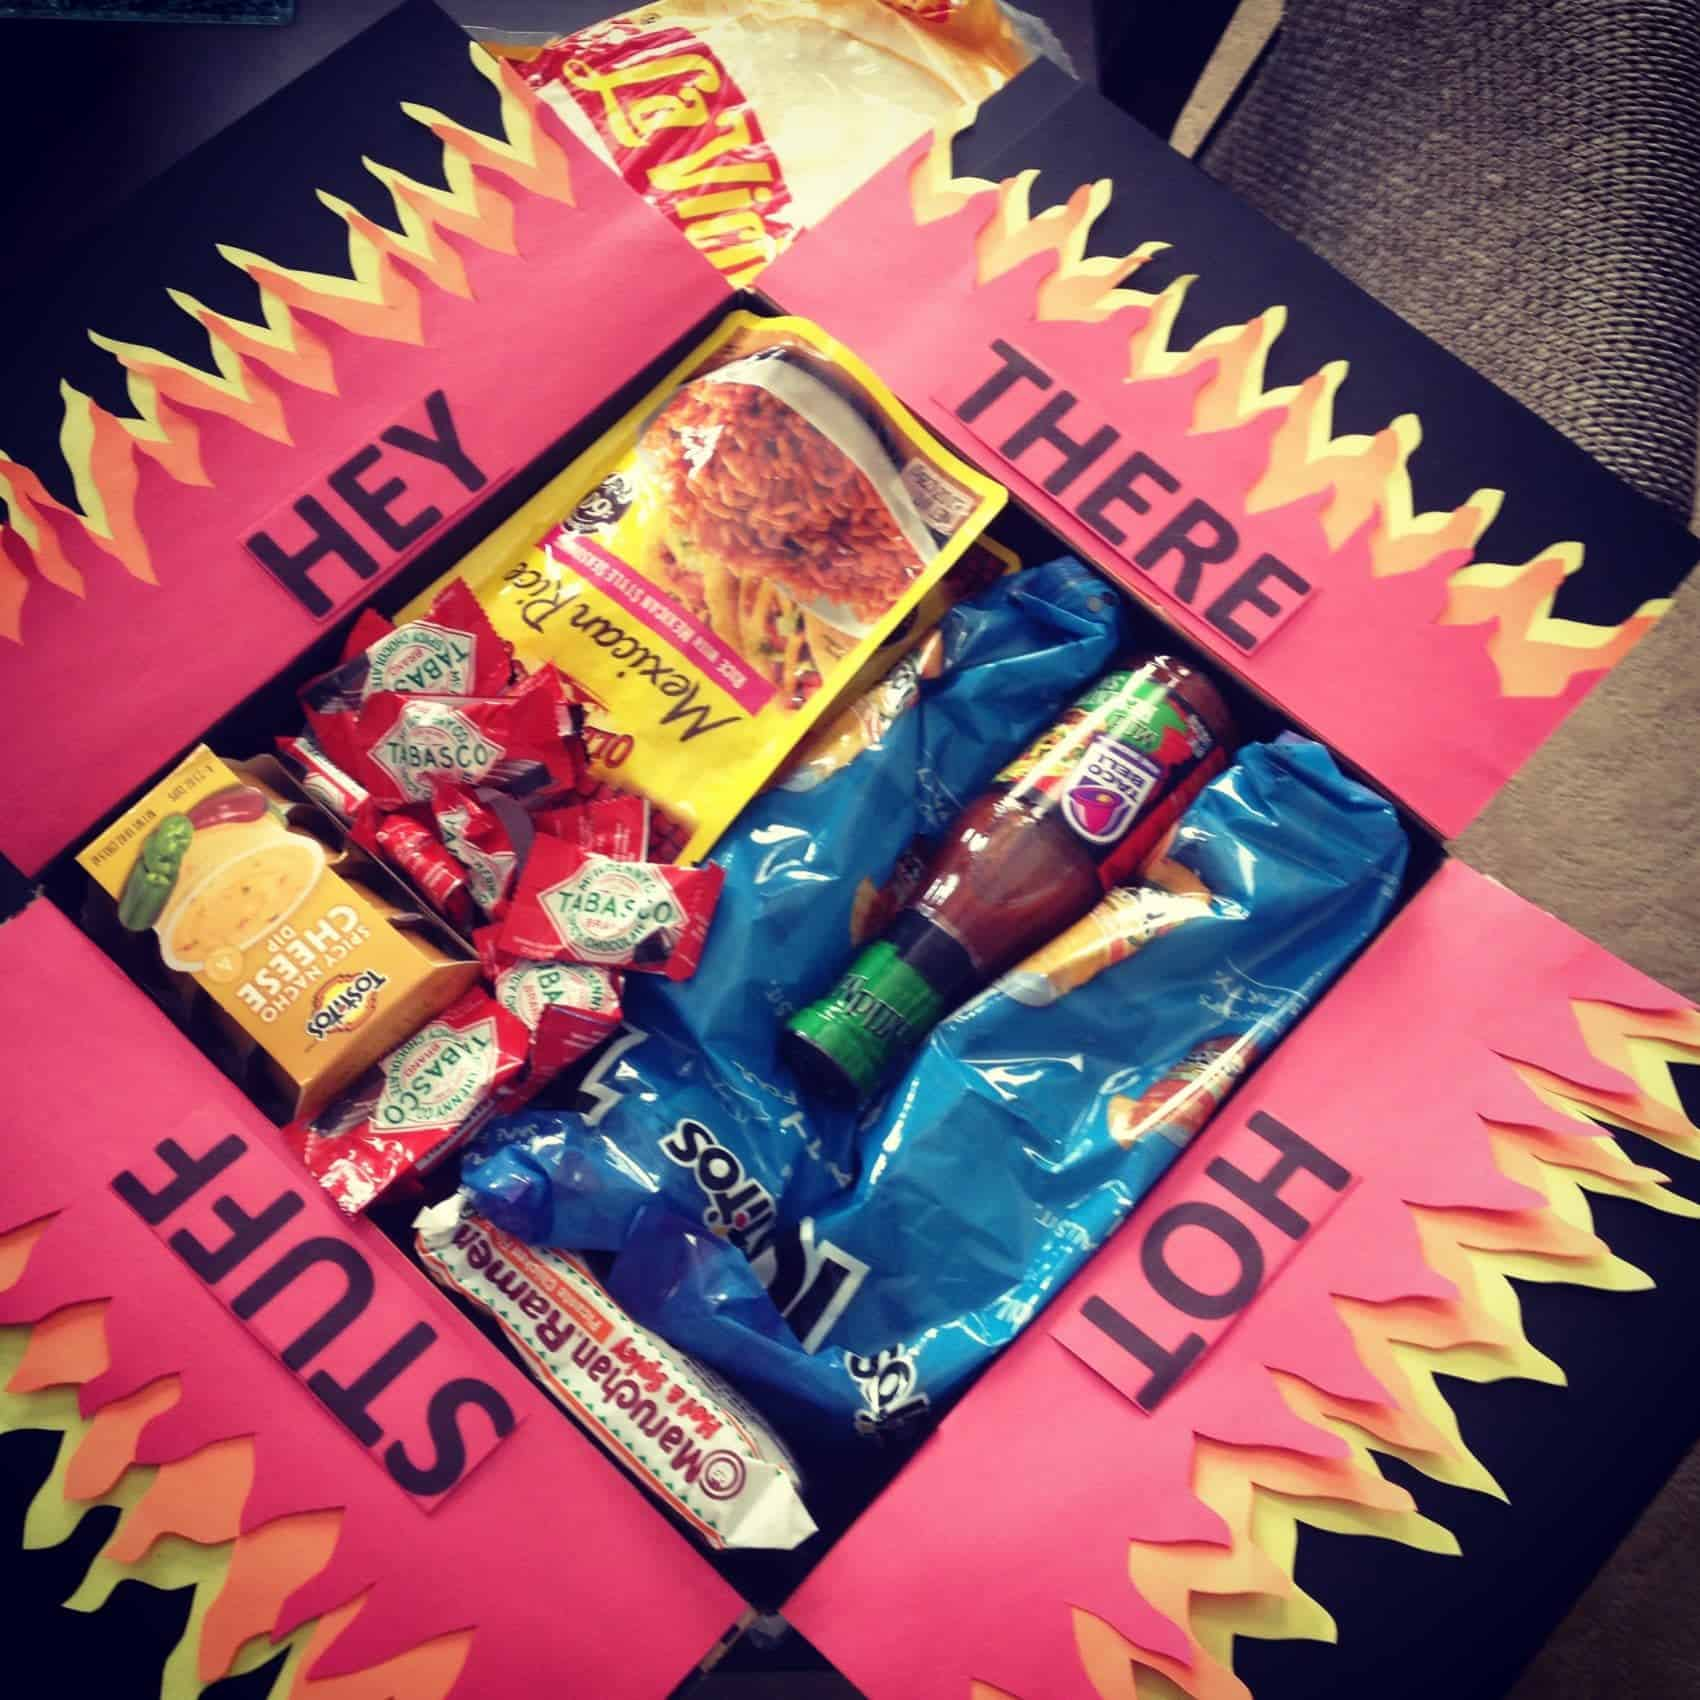 Hey there hot stuff care package with flame paper attached to fold out top filled with spicy foods.